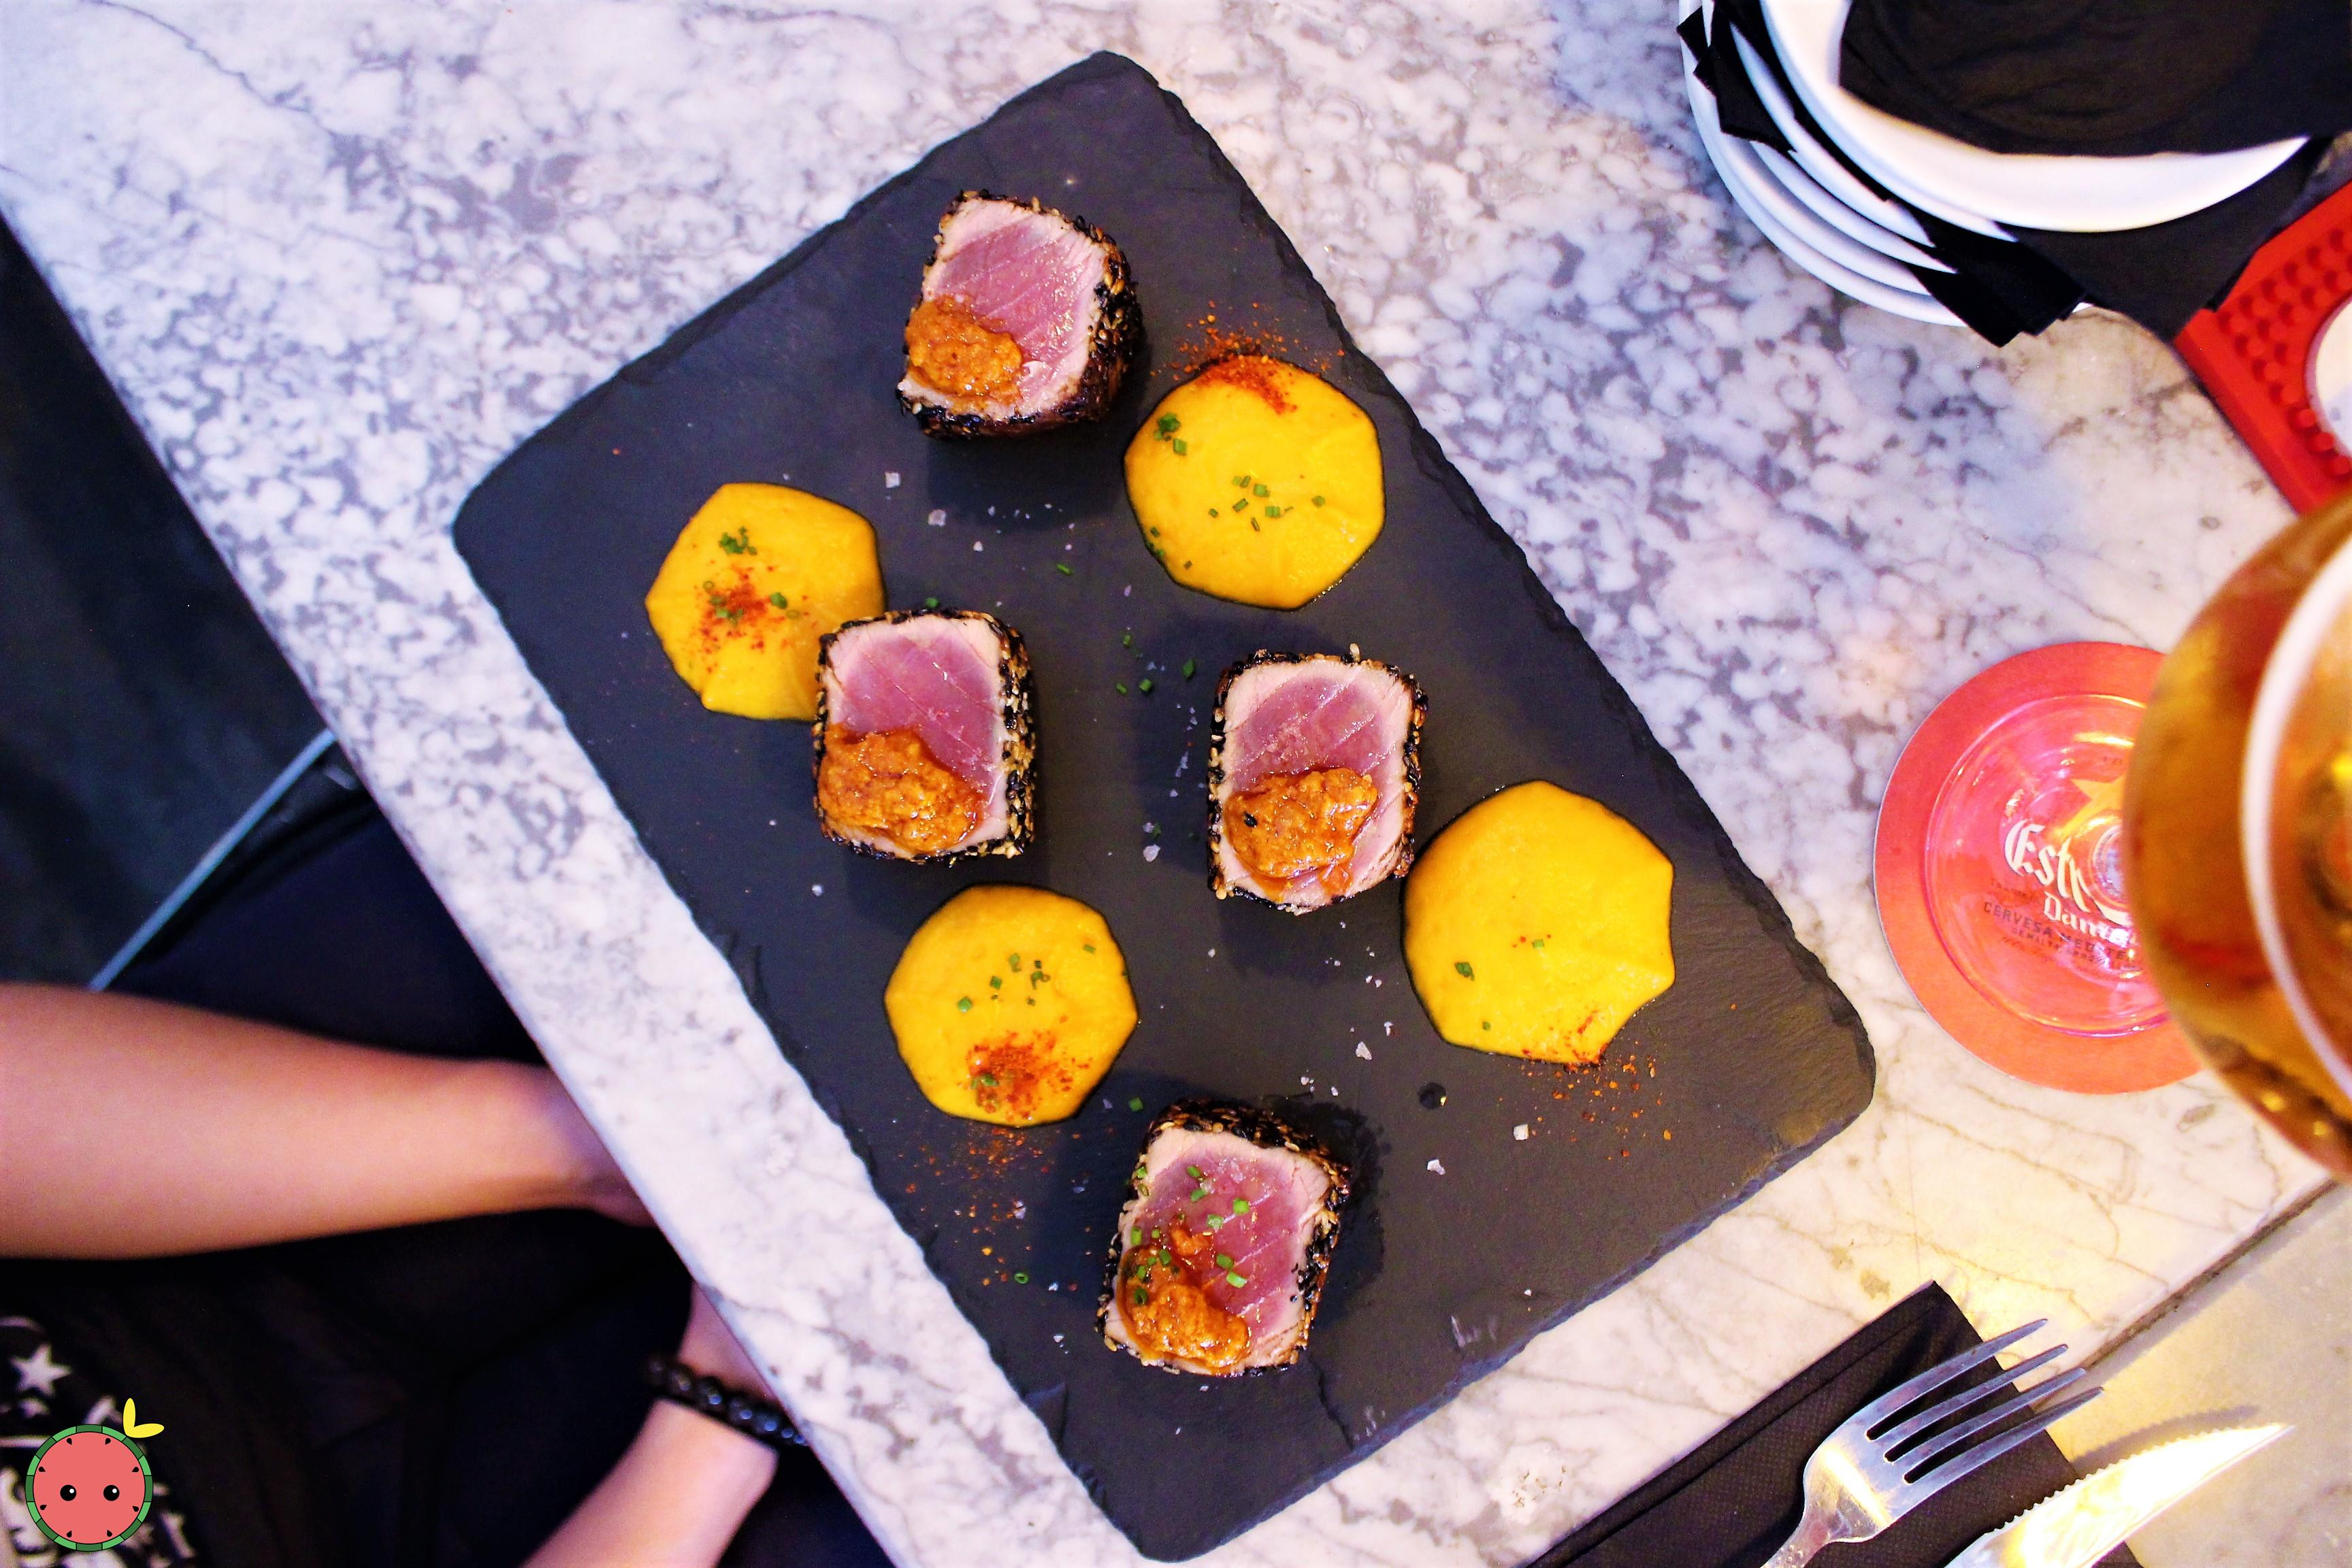 Tuna_dices_breaded_in_sesame_with_sweet_potato_purée_and_honey_(2)